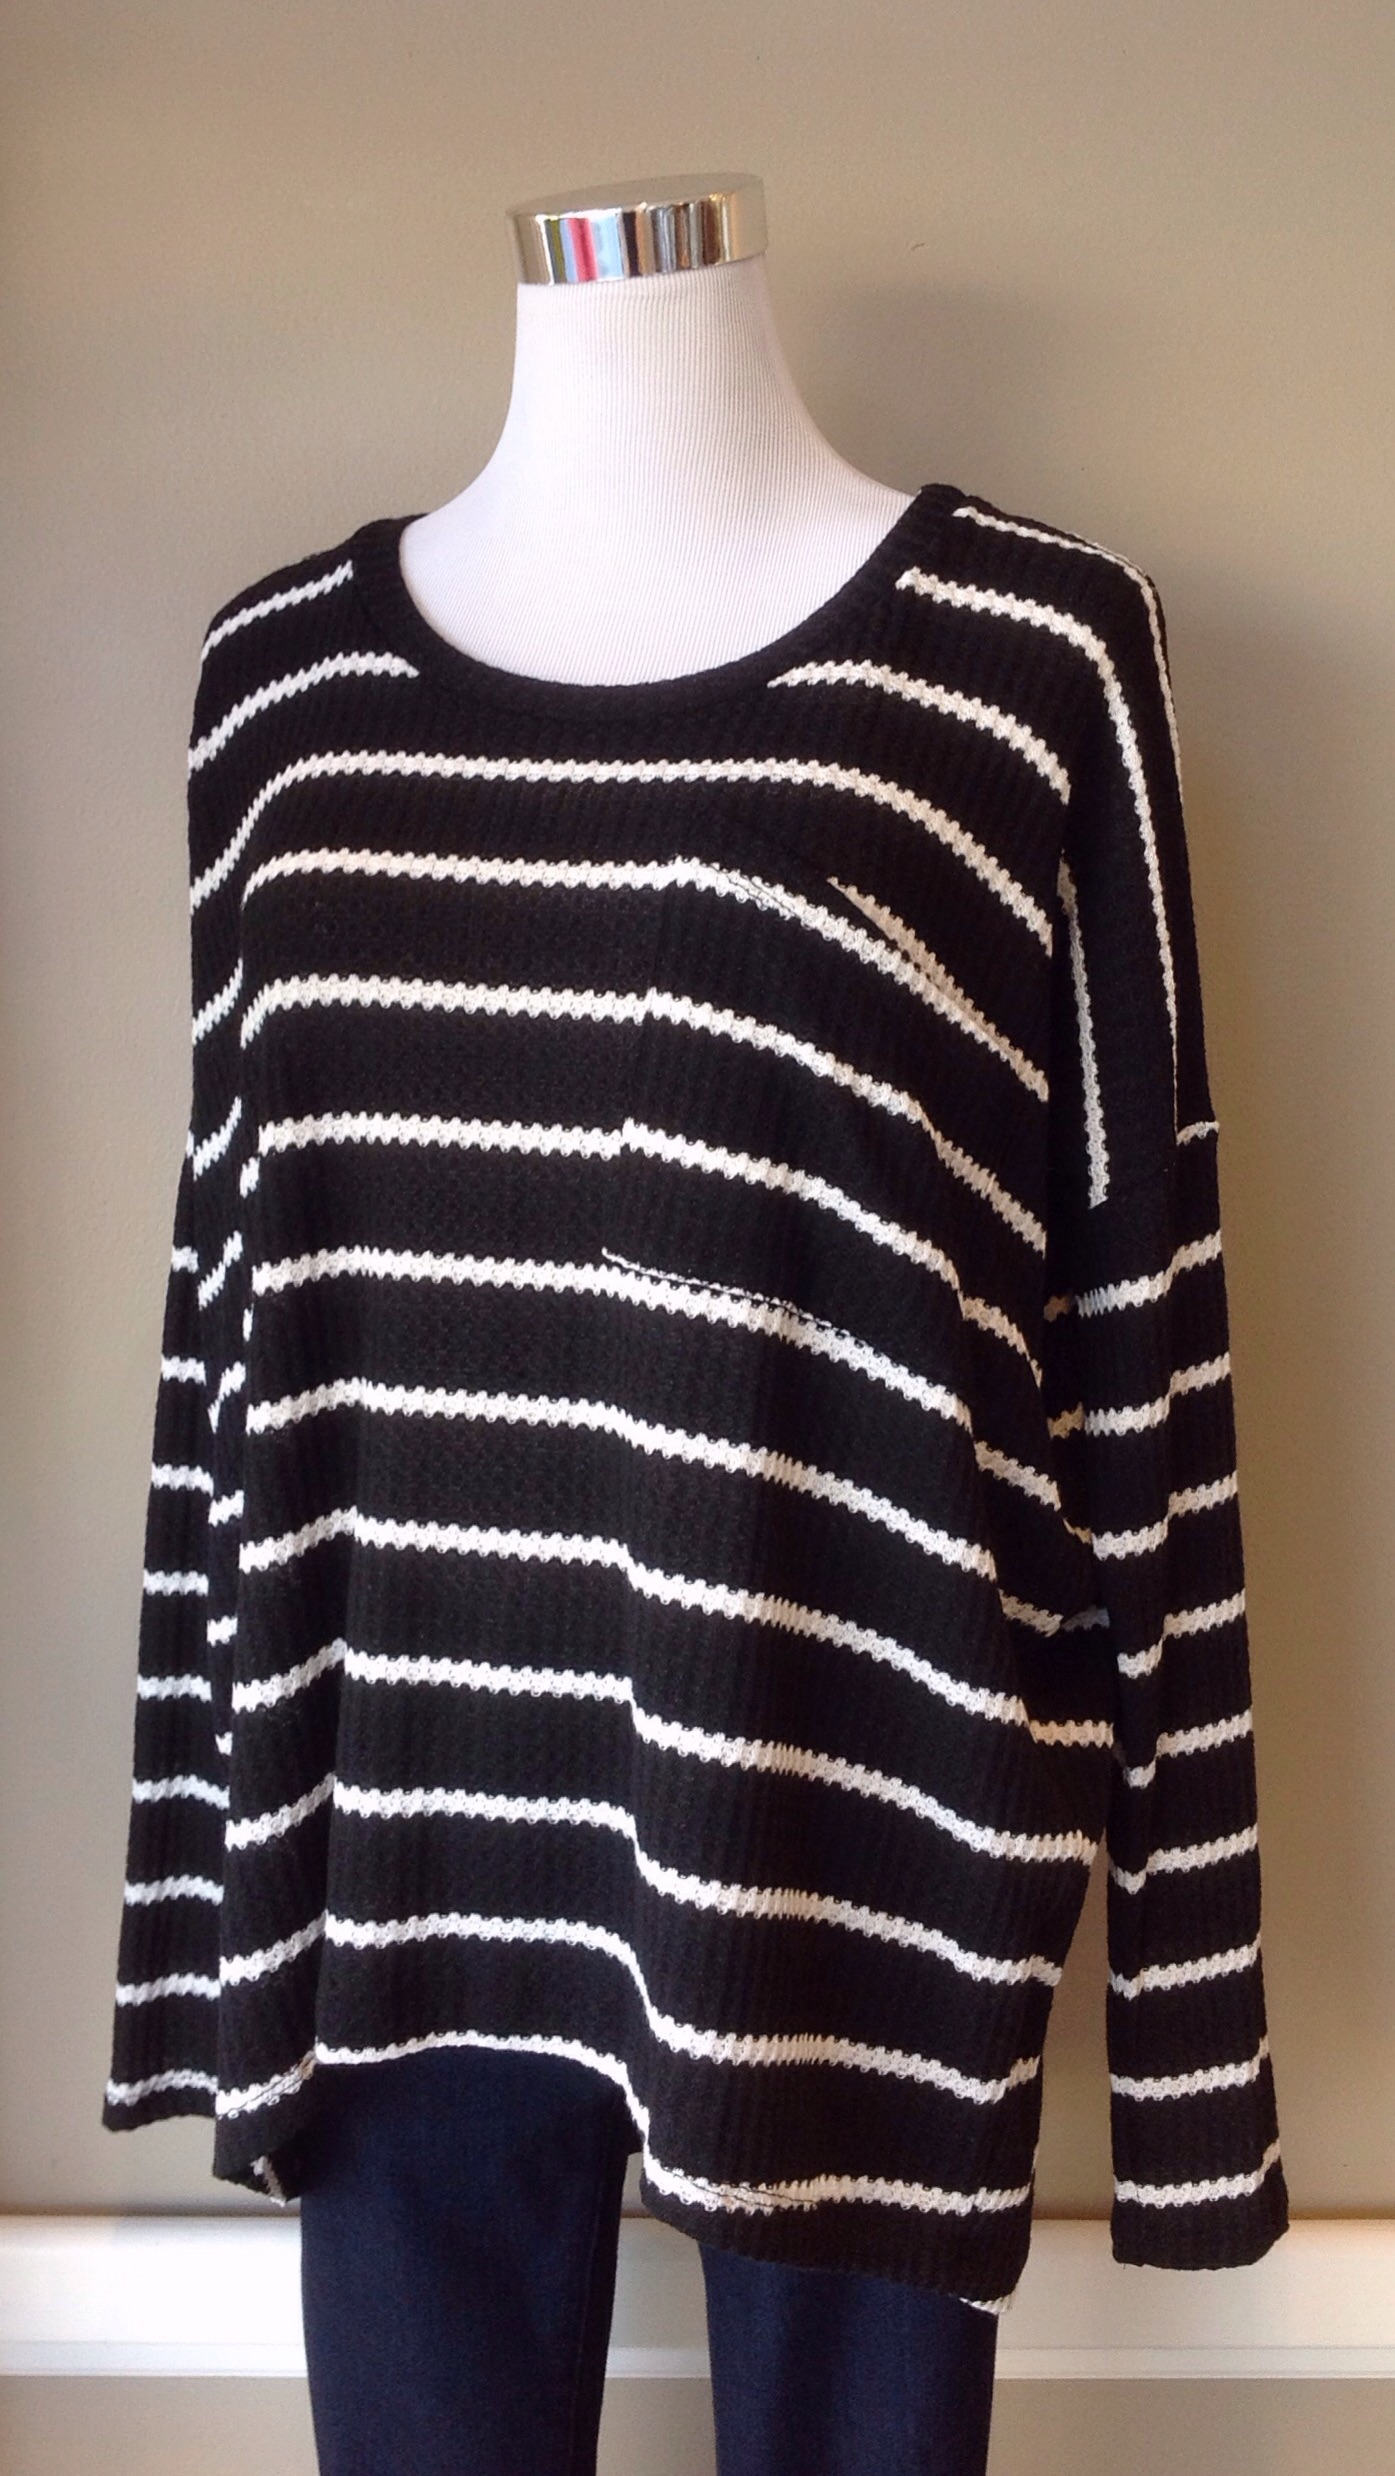 Boxy waffle knit sweater with front pocket, $32